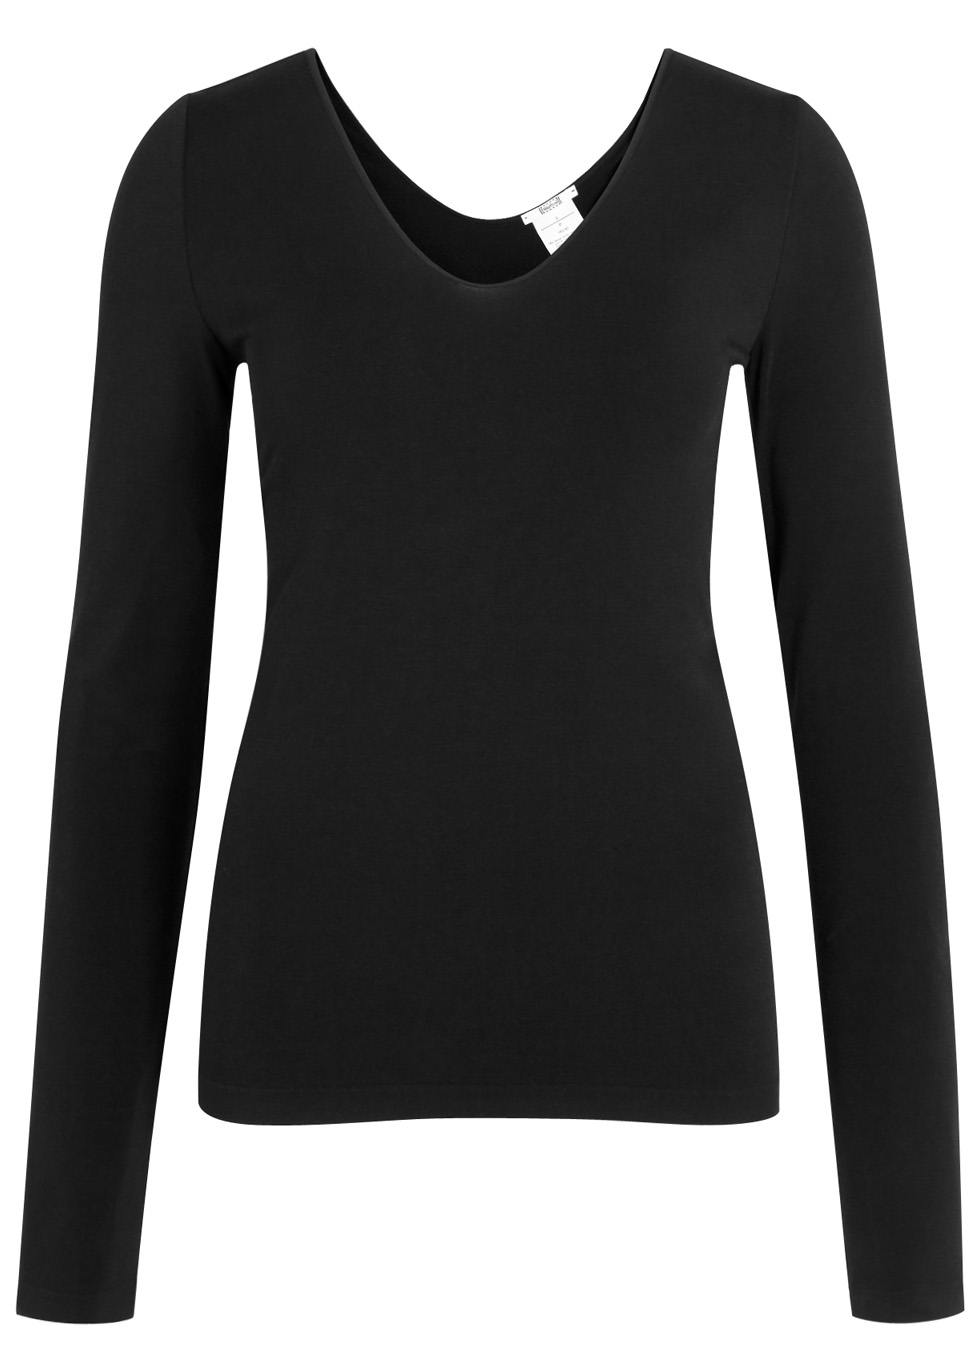 Black seamless jersey top - Wolford